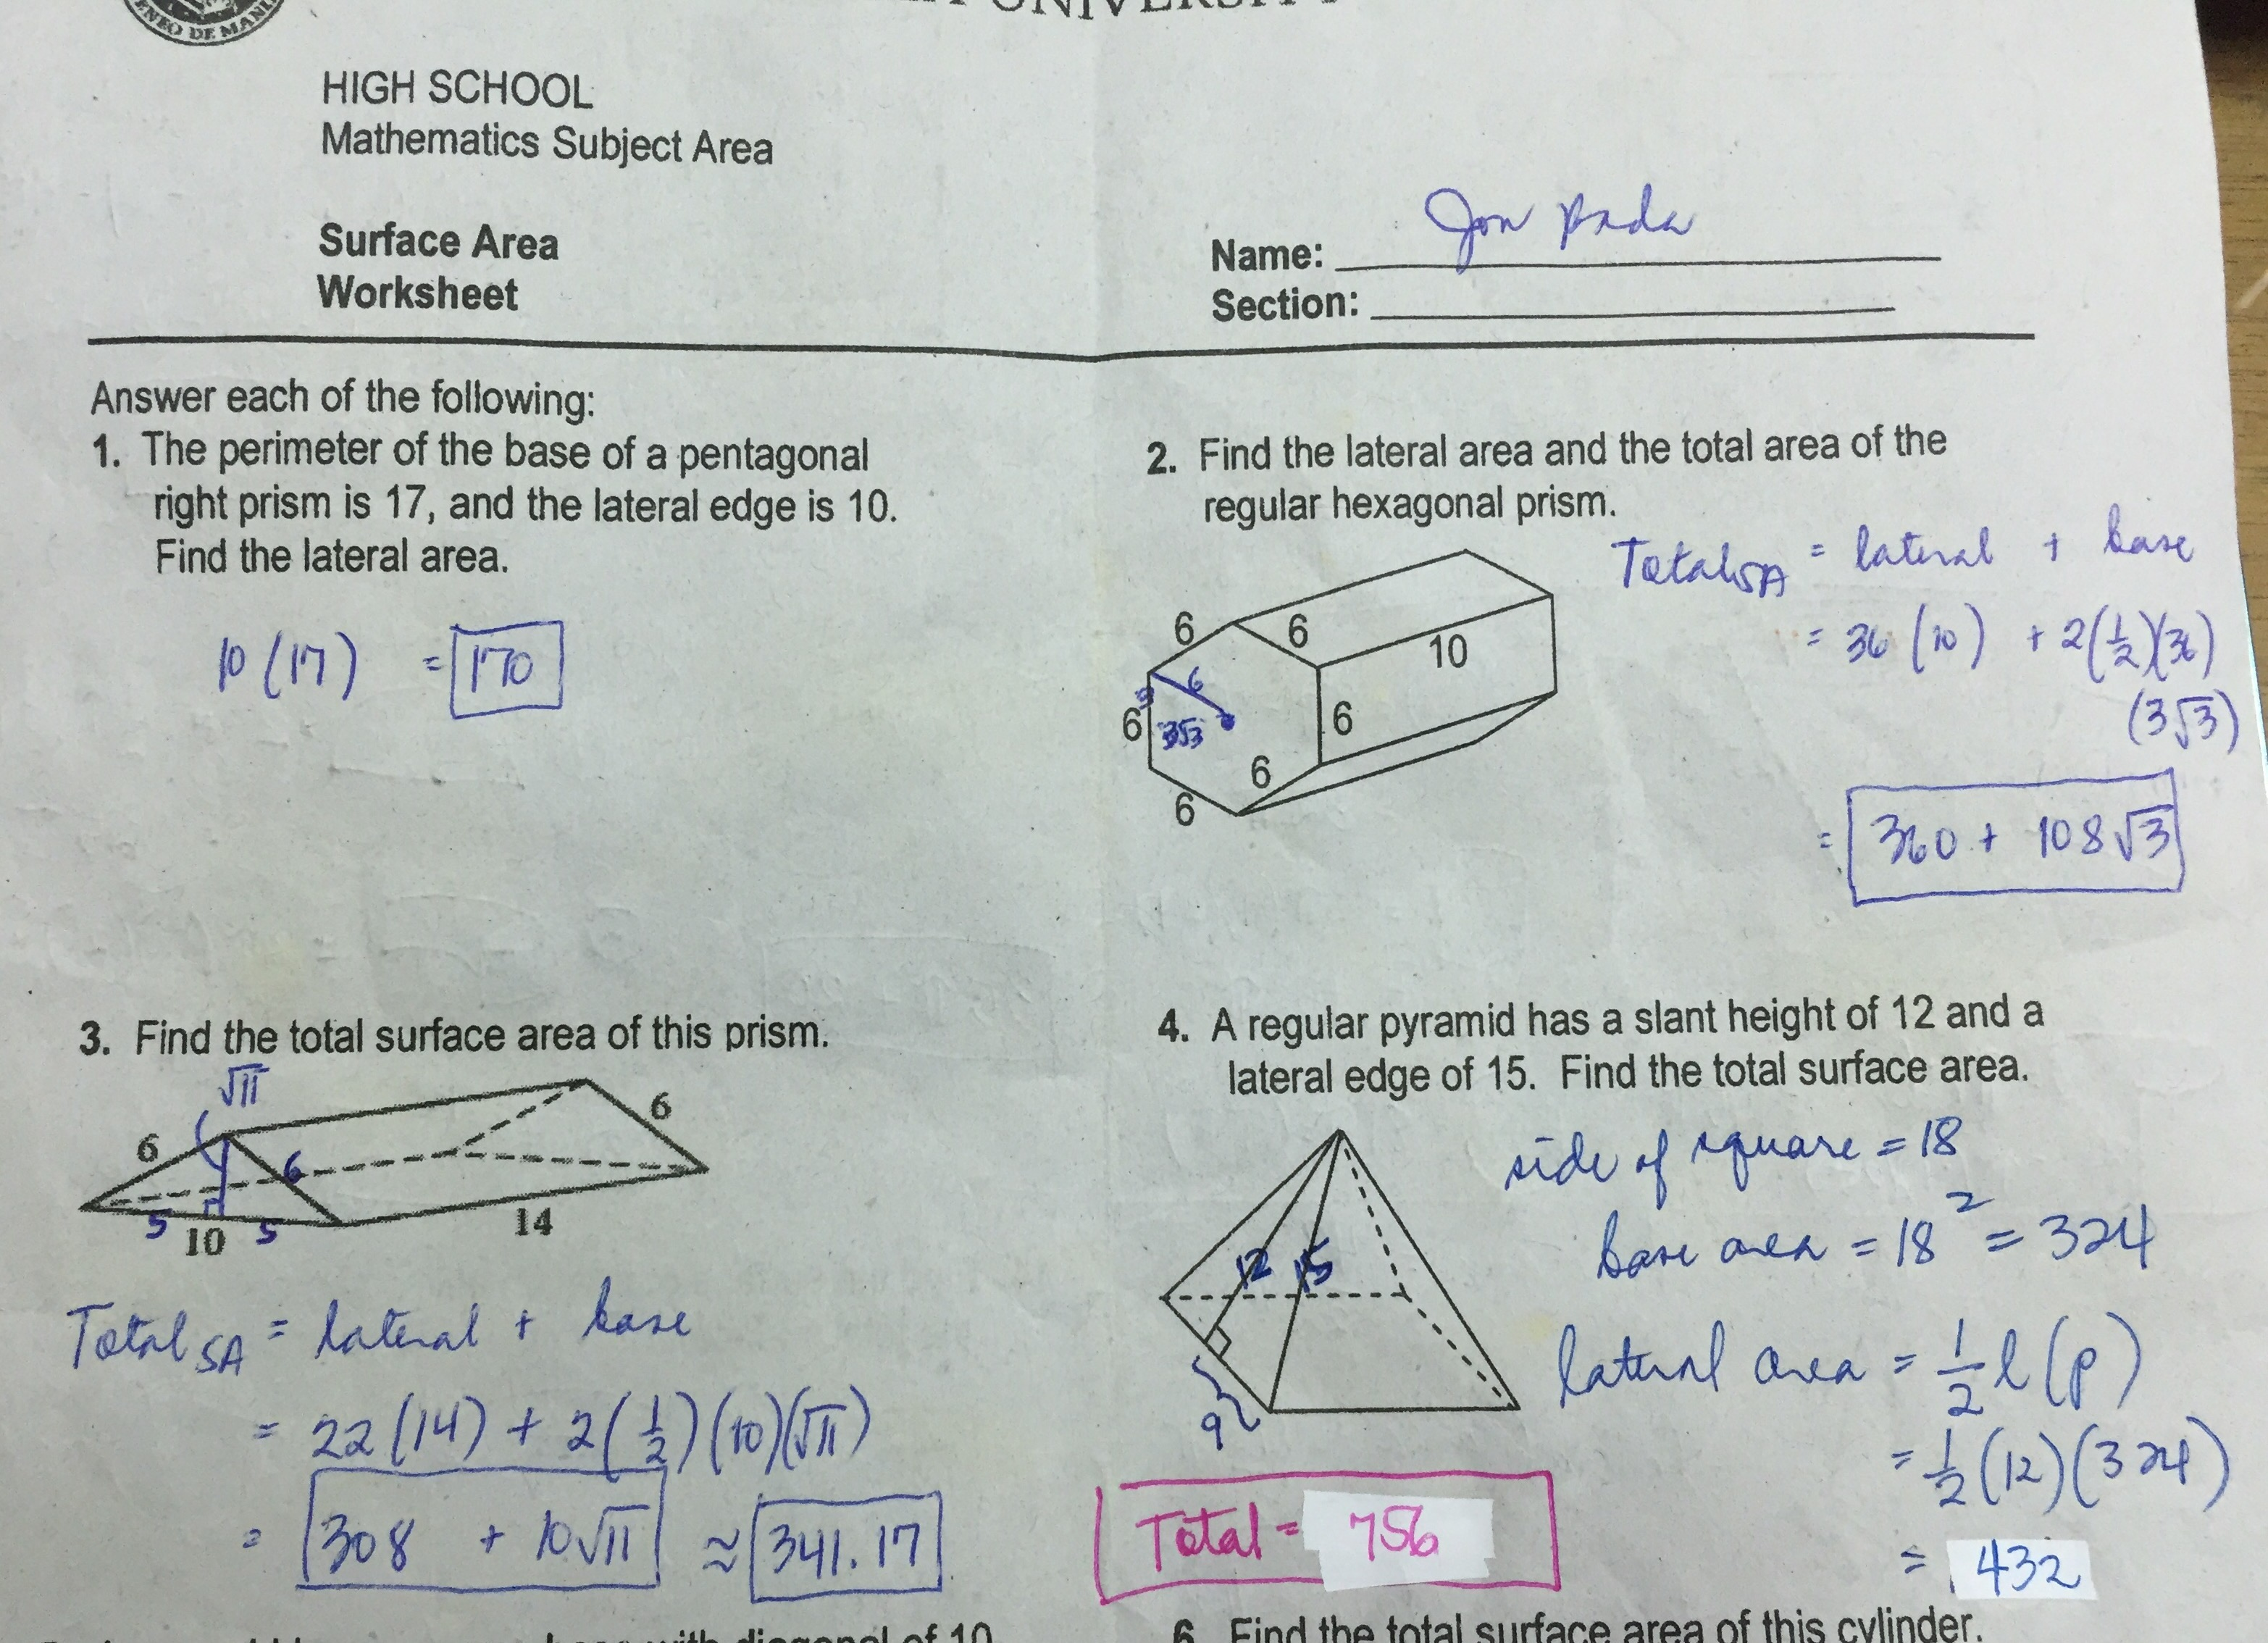 Grade 11 Surface Area Worksheet Answer Key Ateneo High